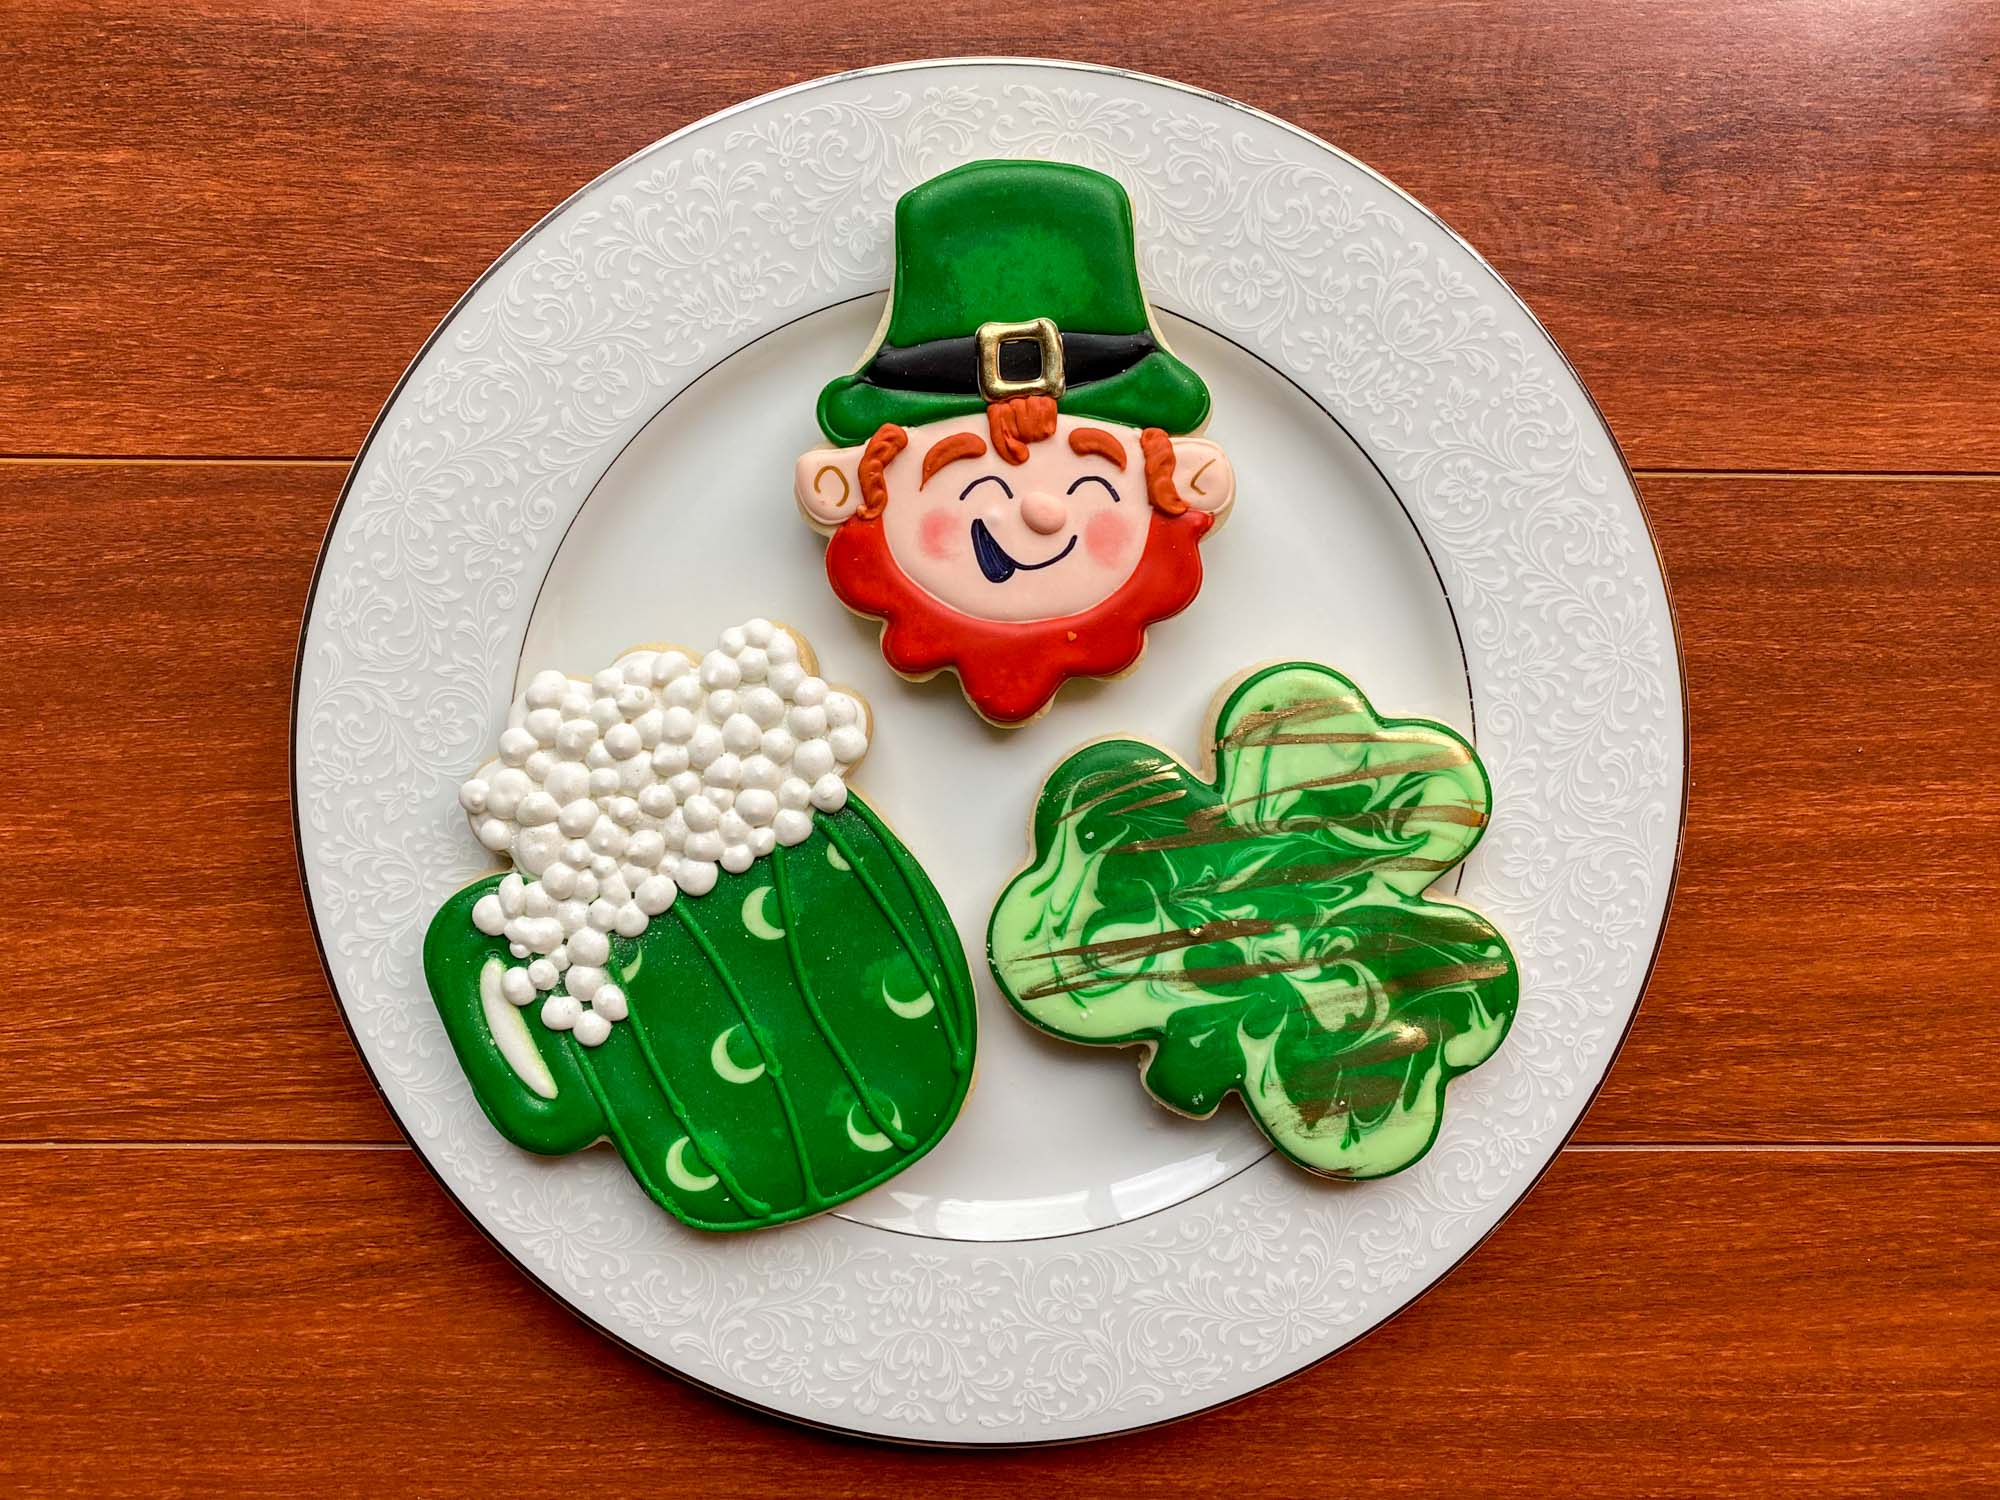 A Local's Guide to Celebrating St. Patrick's Day in Cleveland